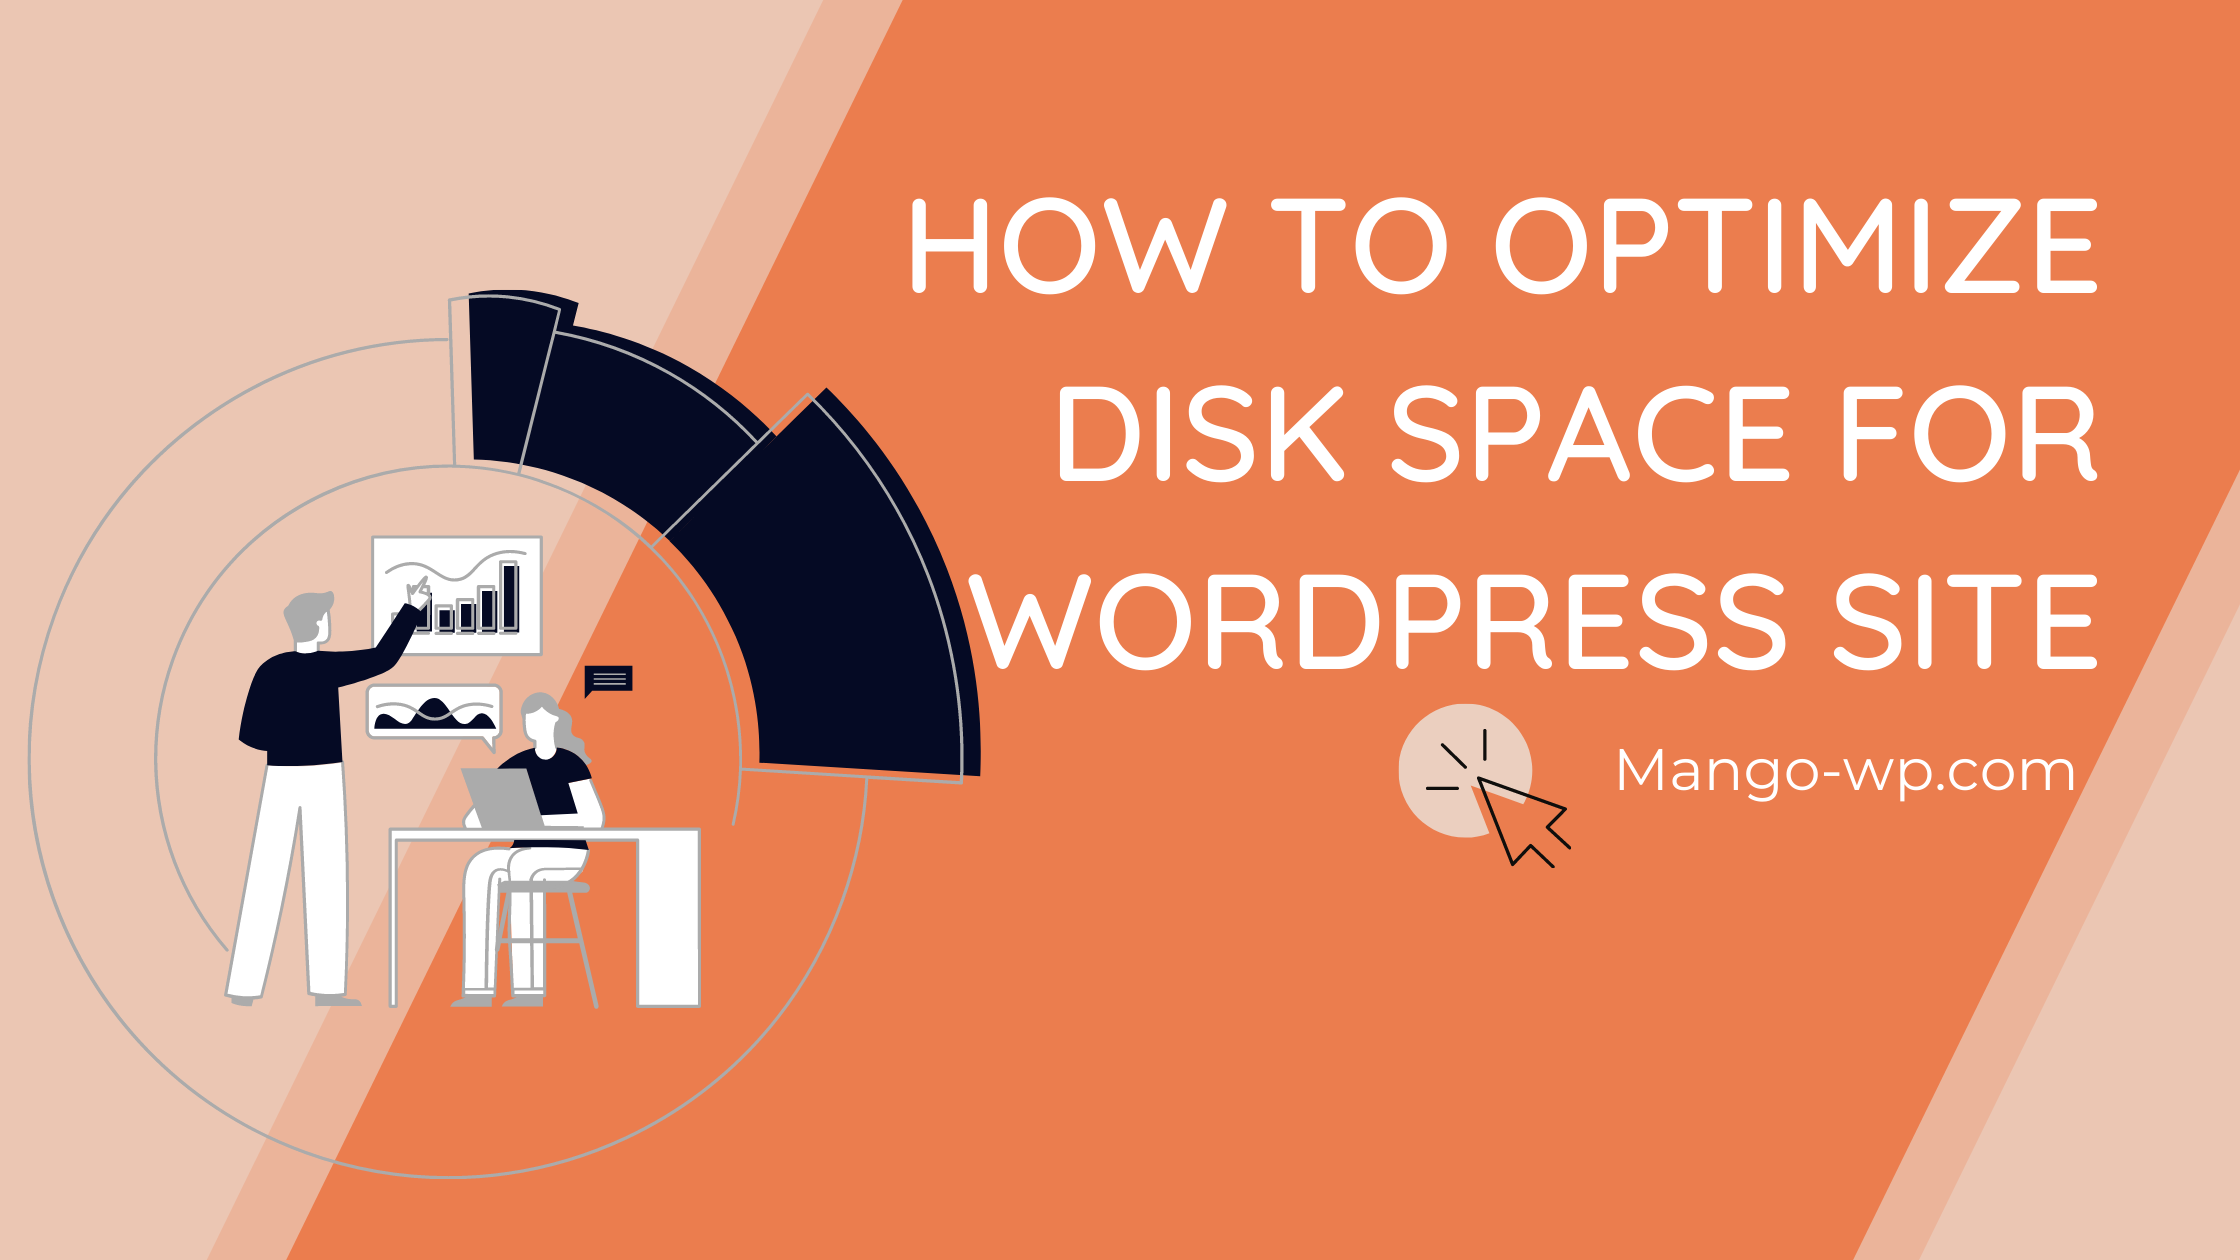 HOW TO OPTIMIZE Disk space for WordPress site